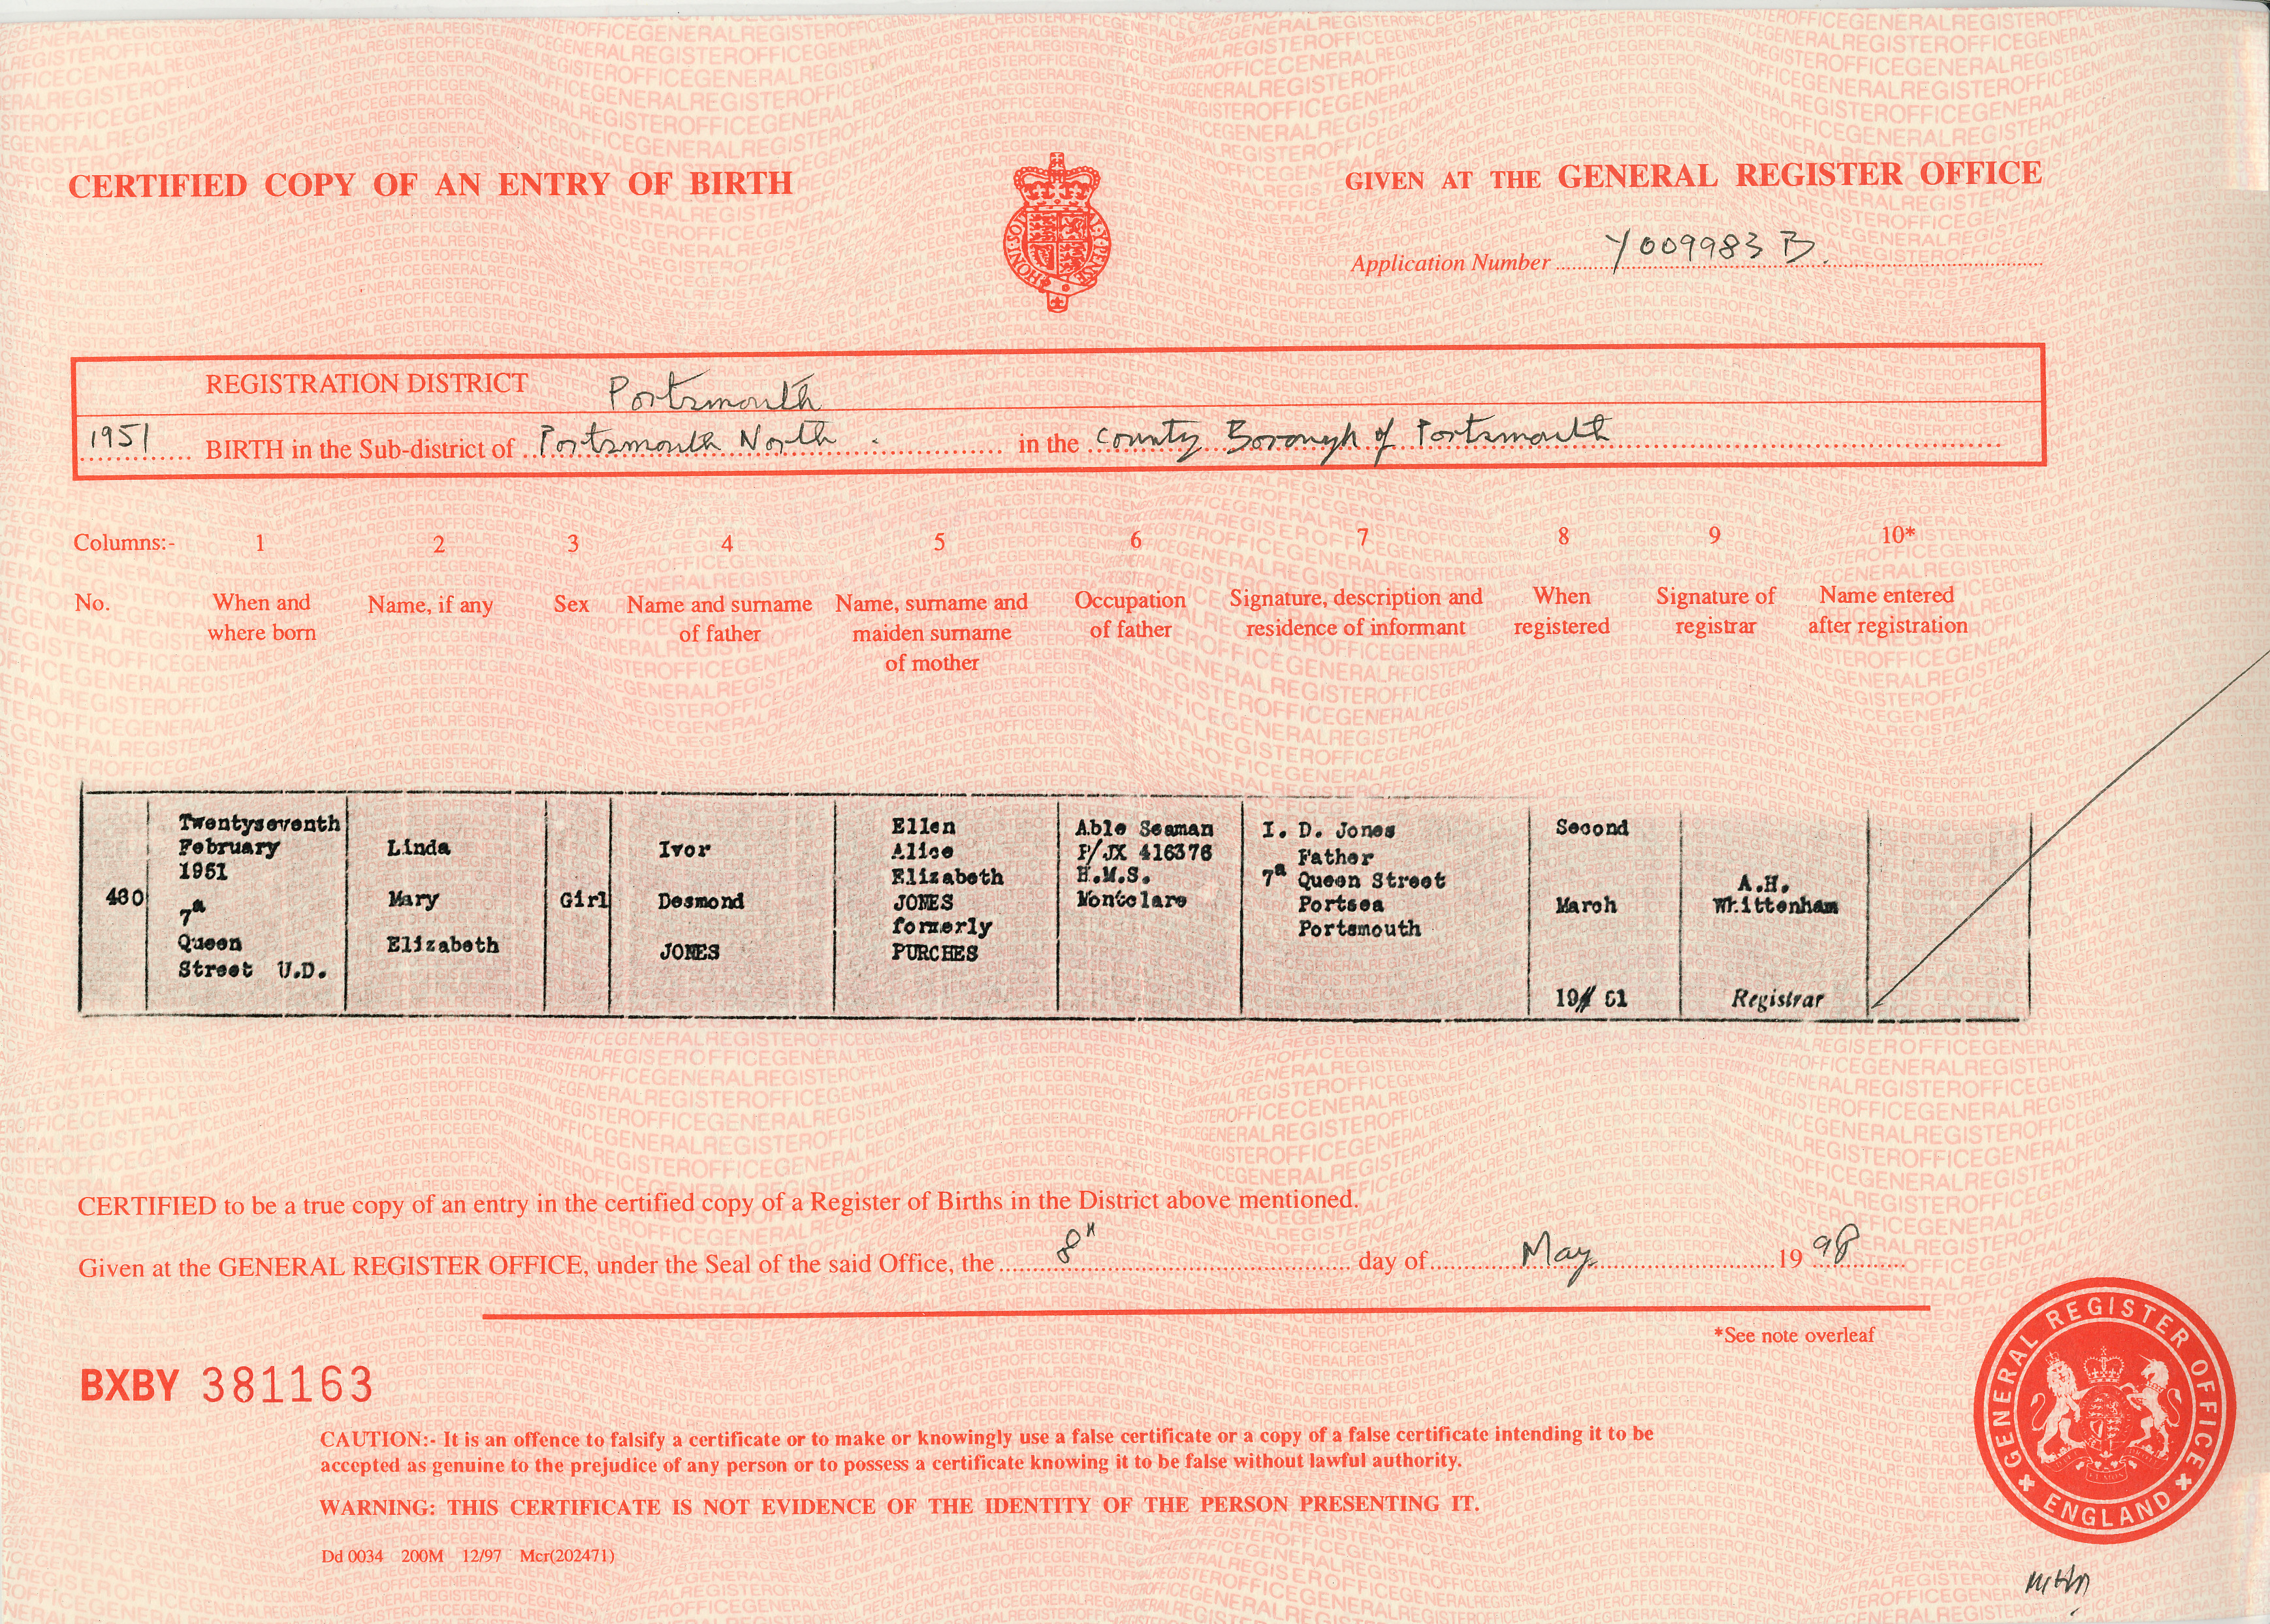 Linda mary elizabeth jones 27 february 1951 rick and - General register office birth certificate ...